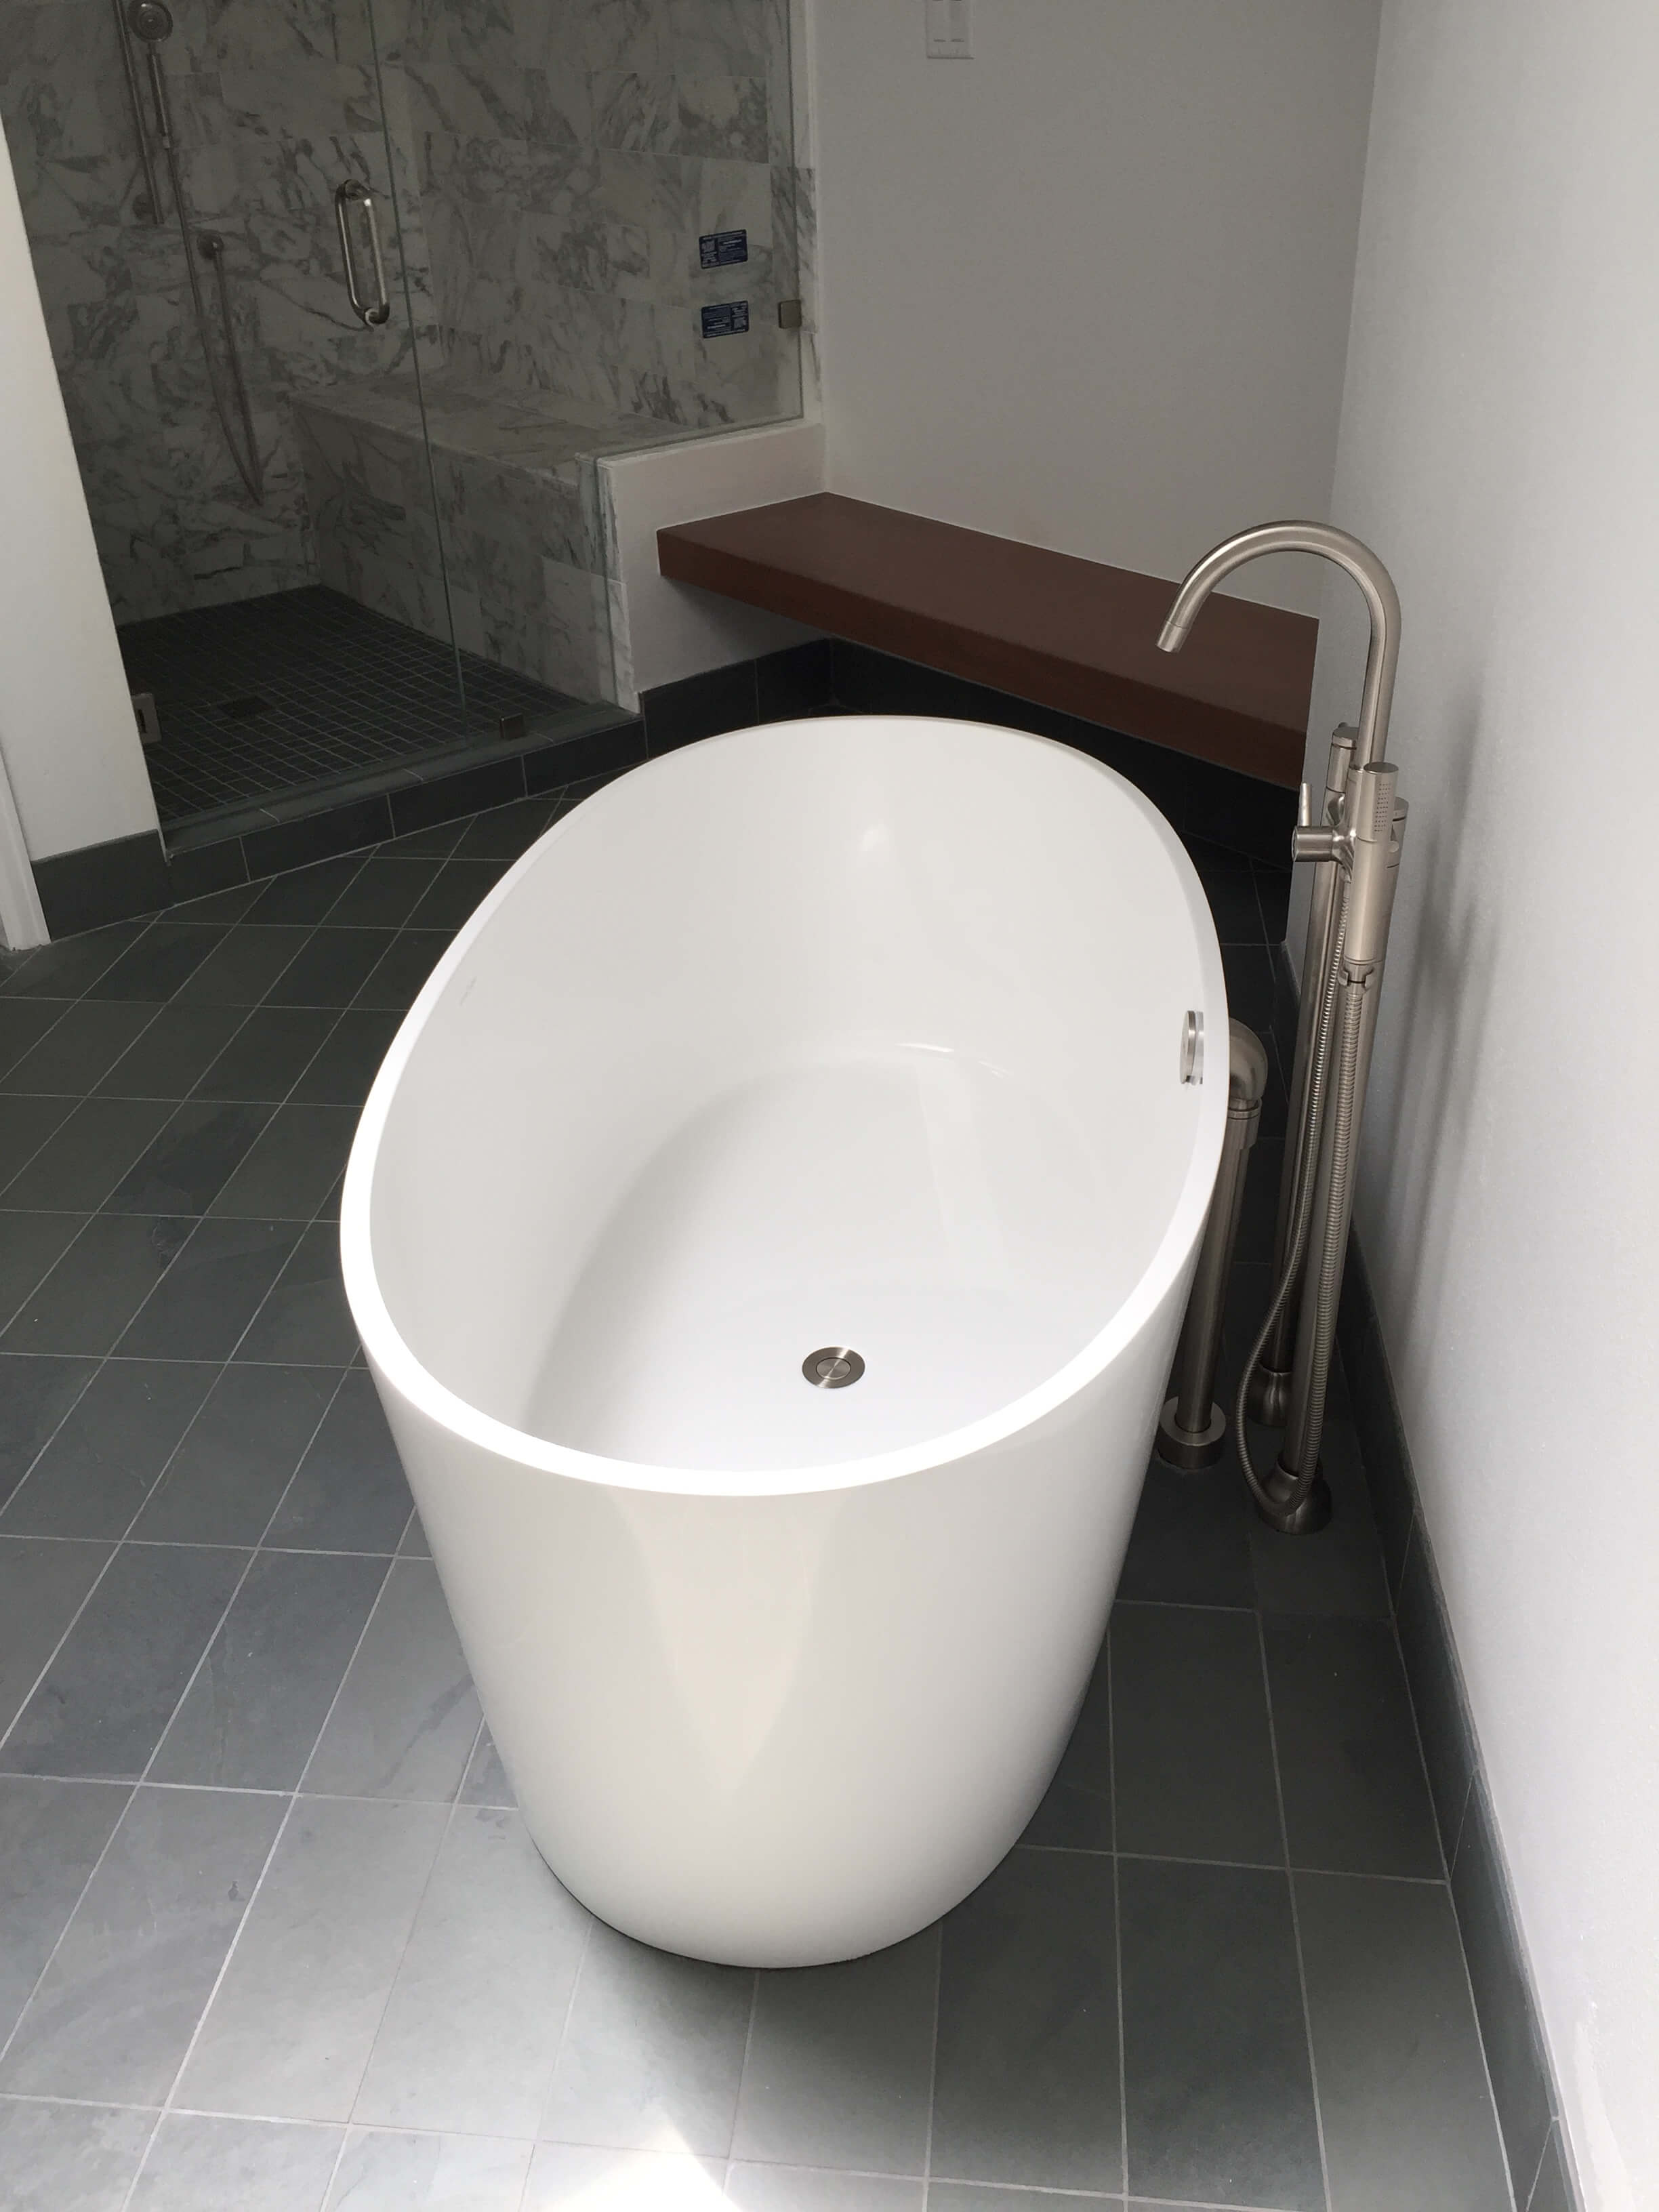 AFTER  - This sleek, free standing tub took up much less floor space than its deck mounted predecessor. The floor tile surrounding it's sculptural shape gives the bathroom a much lighter and up to date look. Carla Aston, Designer | #bathroomremodel #tub #bathroomdesign #freestandingtub